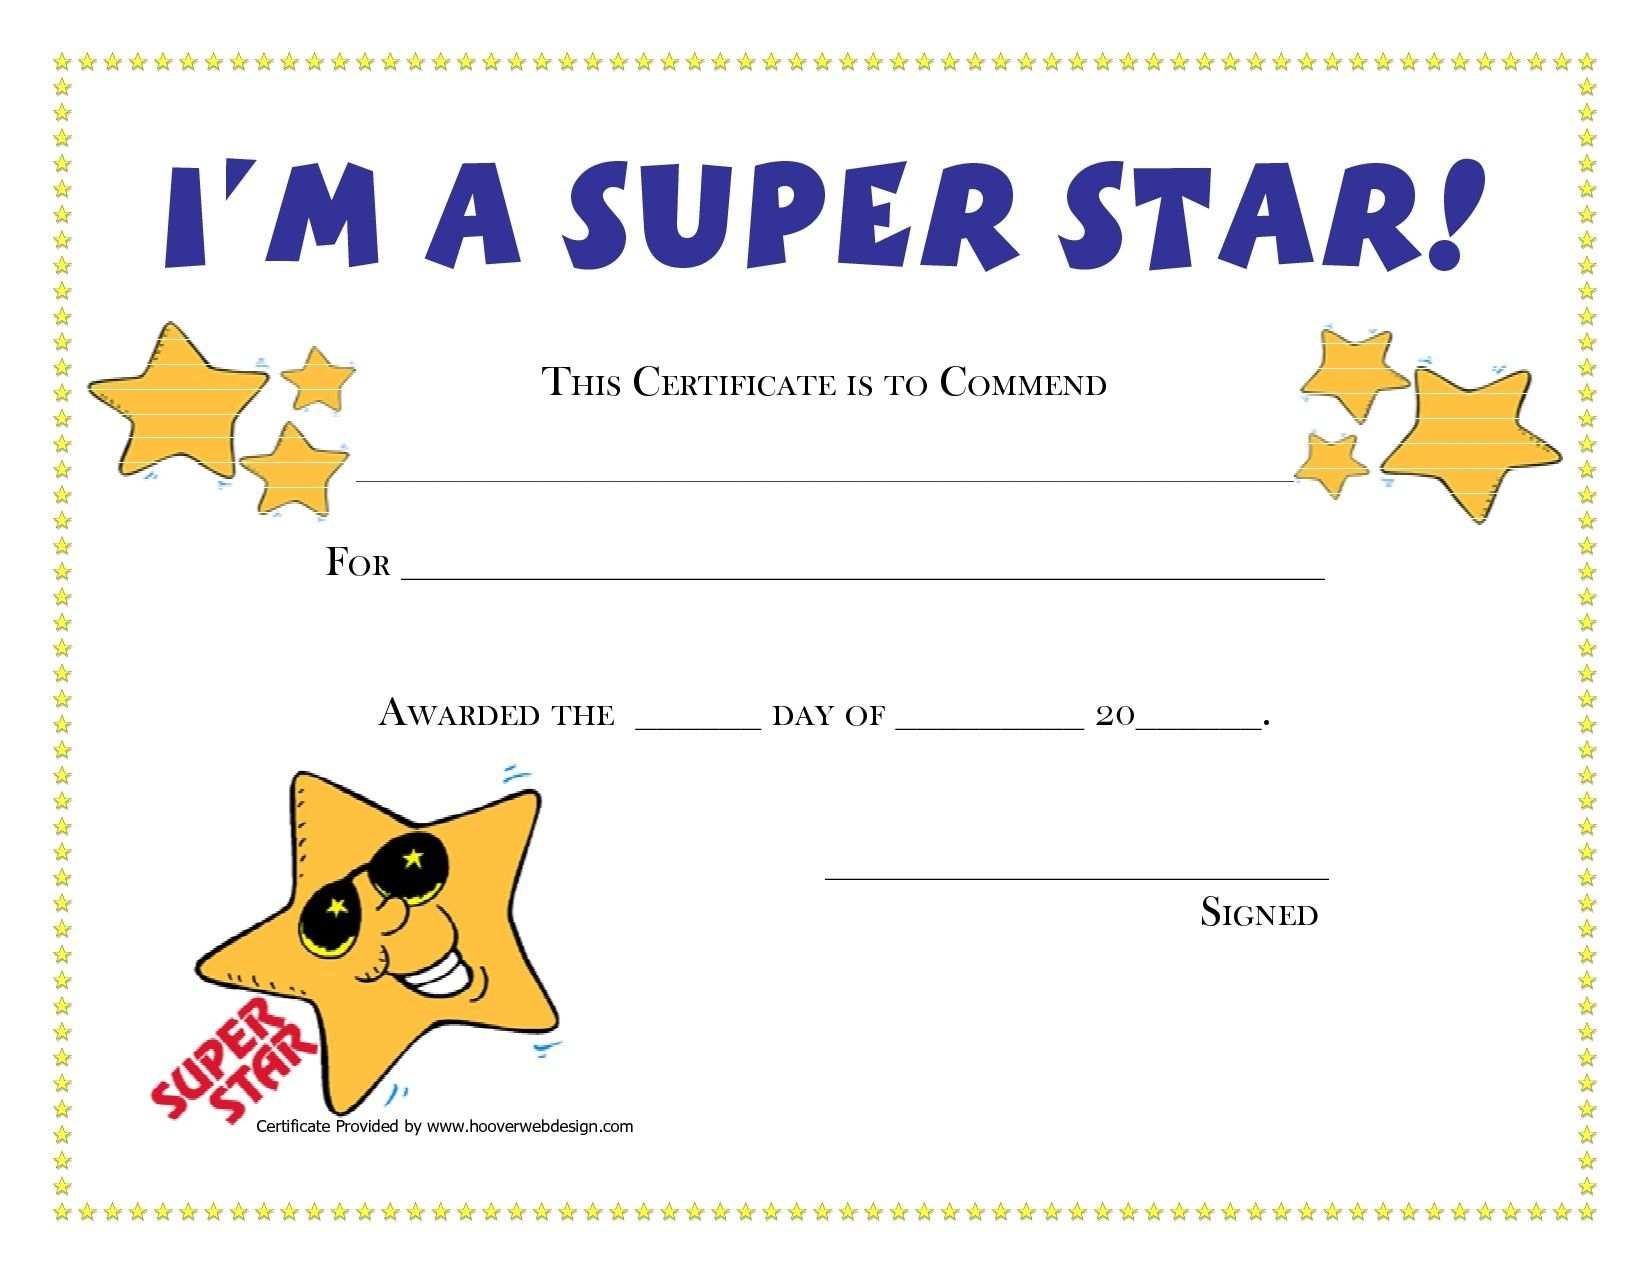 Free Printable Certificates And Awards Basic Printable Award - Free Printable Certificates And Awards